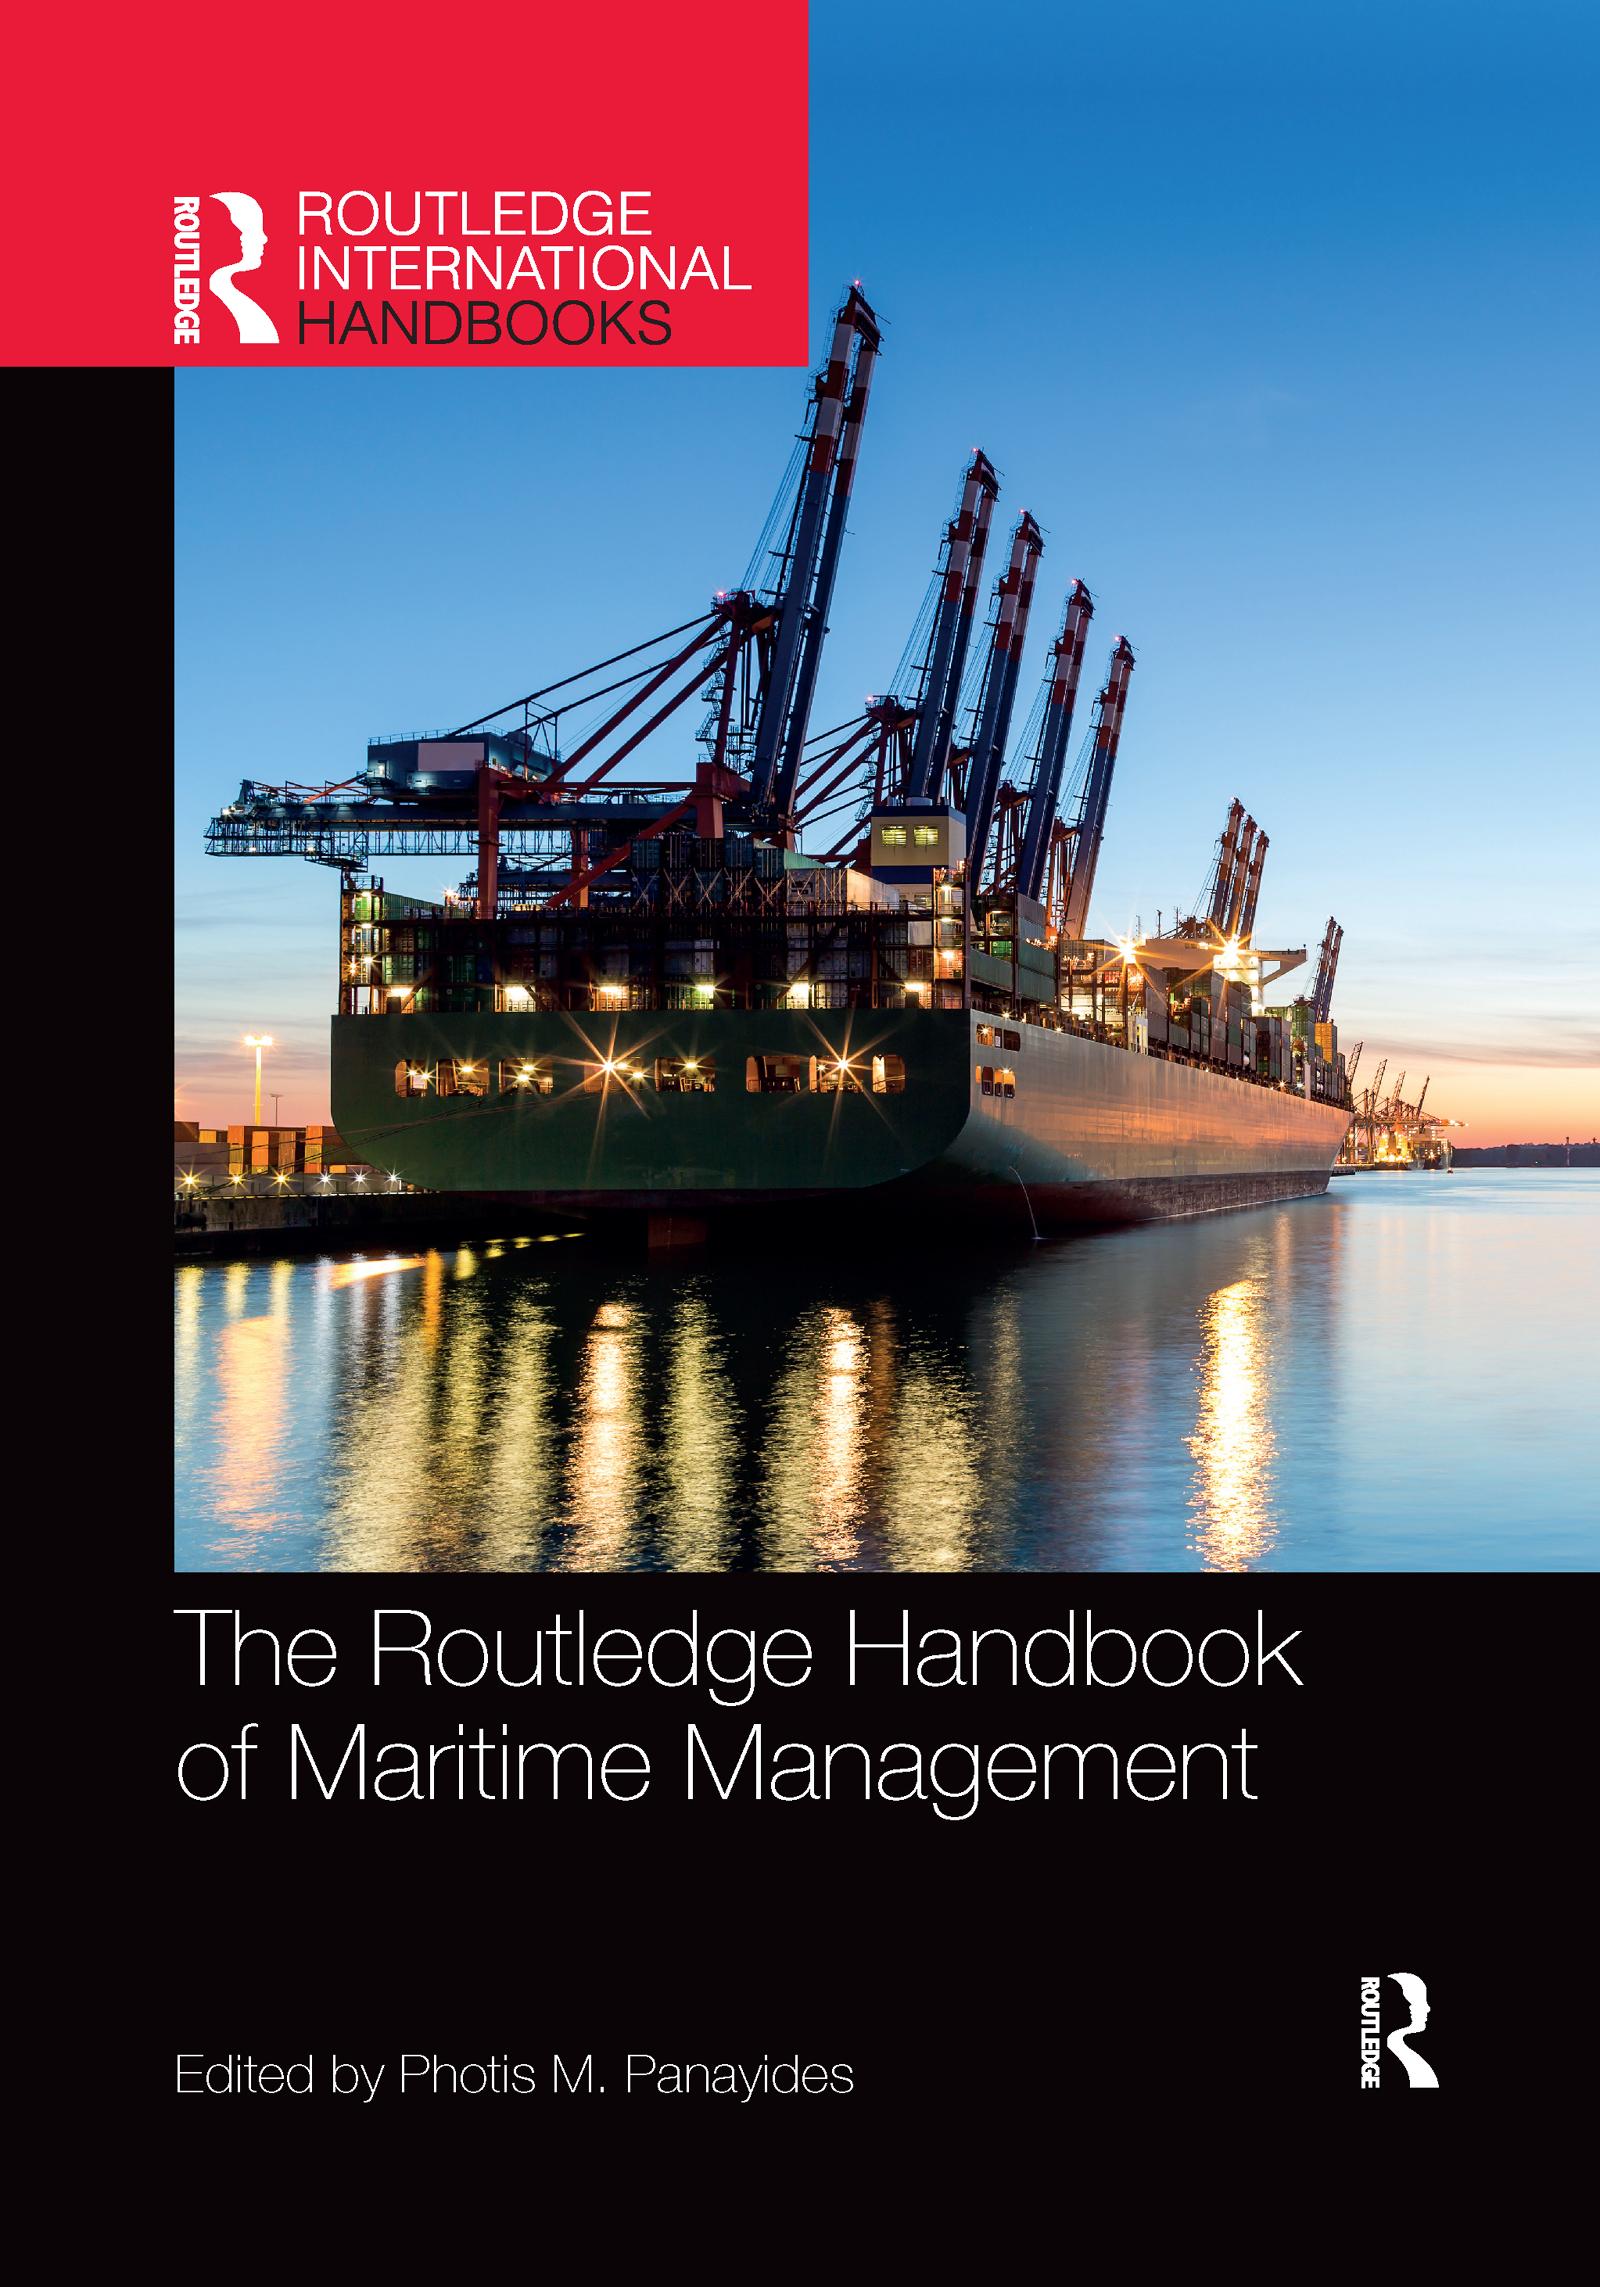 The Routledge Handbook of Maritime Management